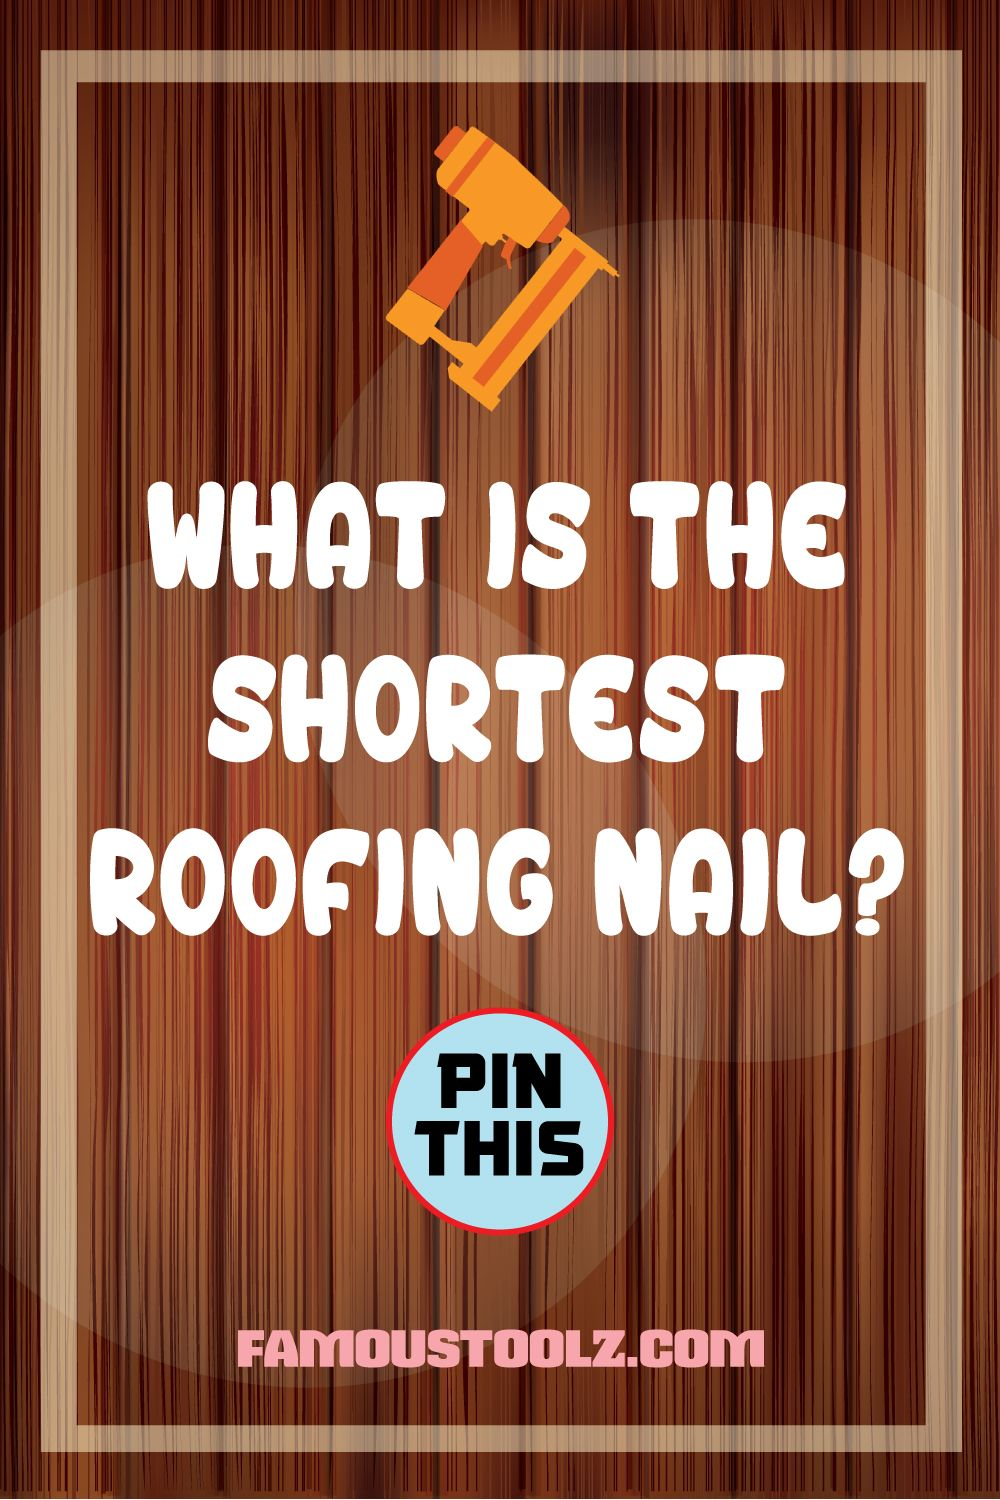 How Long Do Roofing Nails Need To Be Famoustoolz In 2020 Roofing Nails Roofing Cool Roof